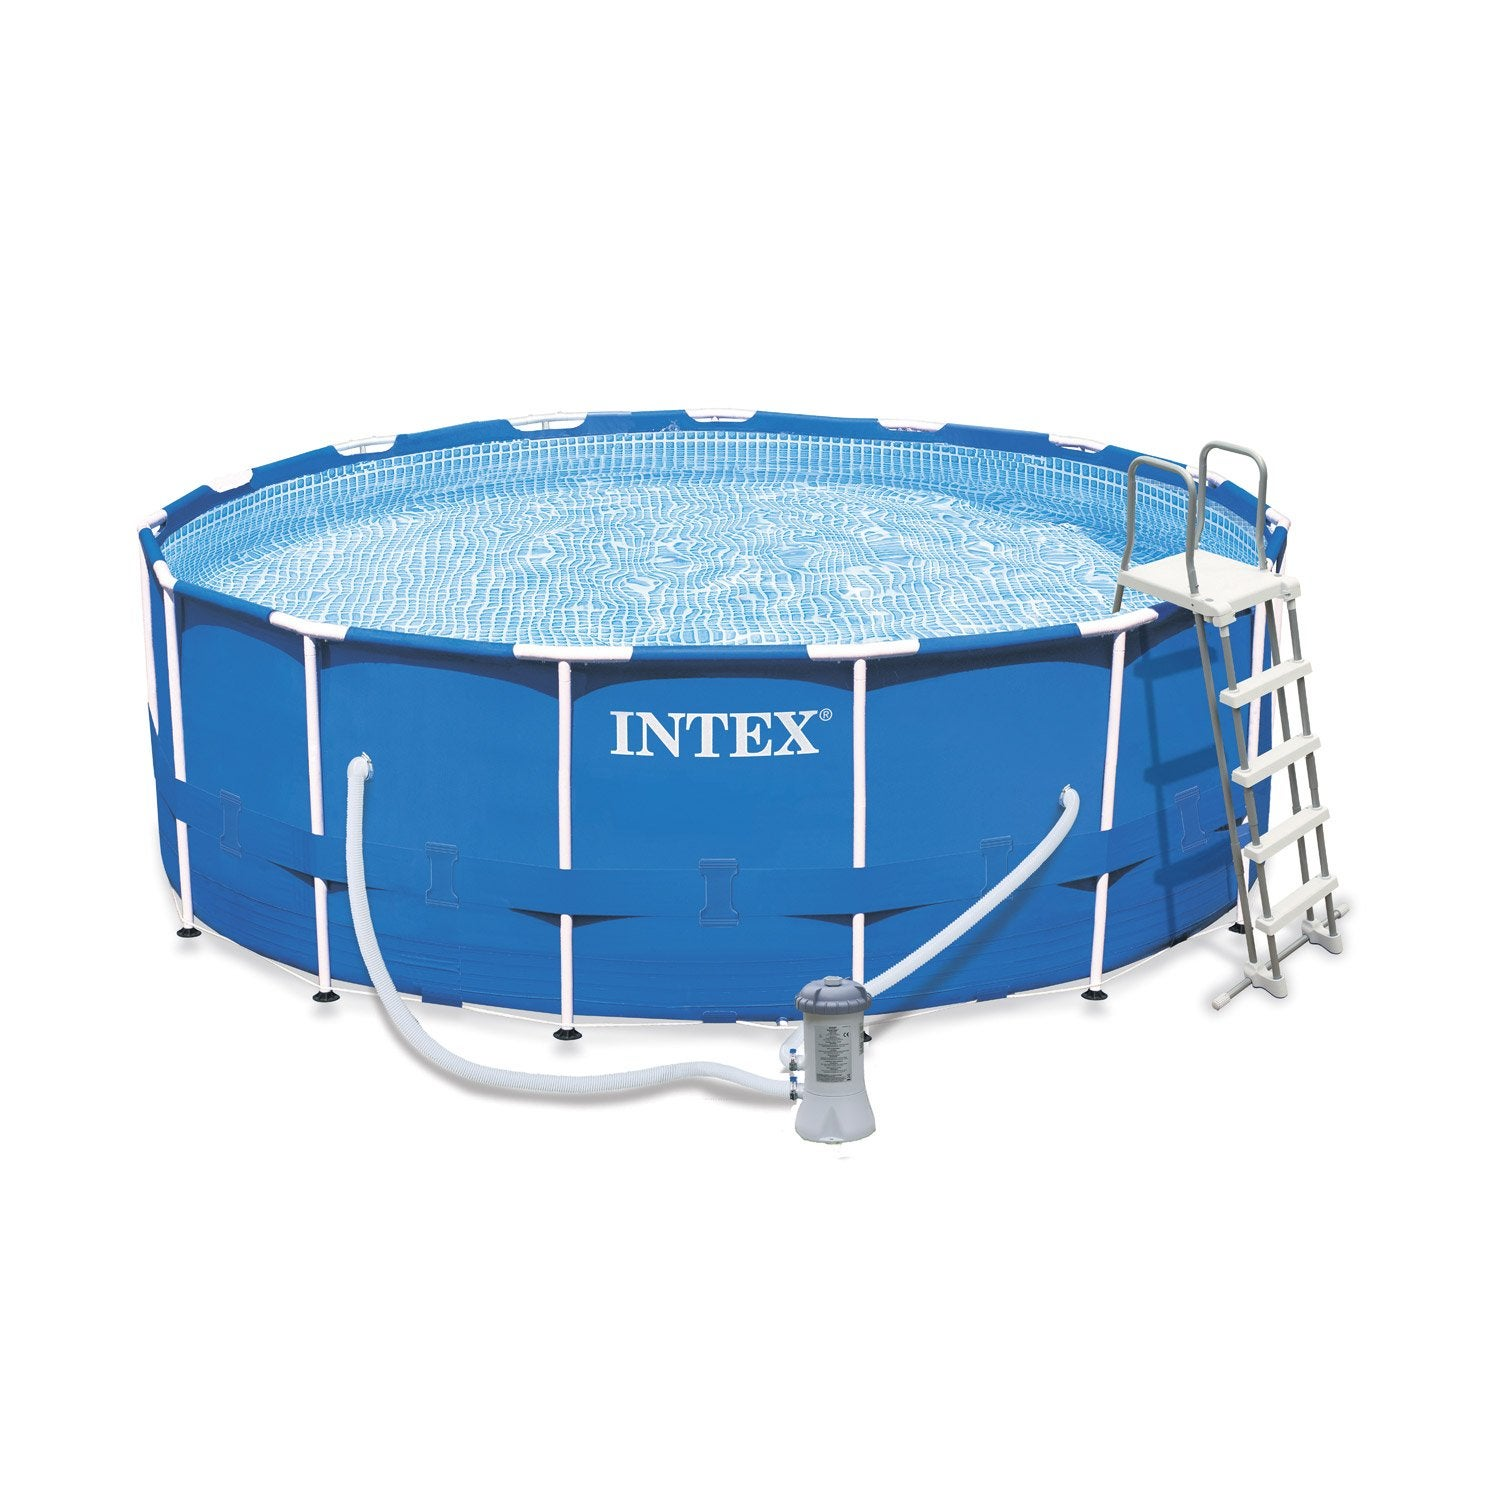 Piscine hors sol autoportante tubulaire metal frame intex for Piscine hors sol 1m60